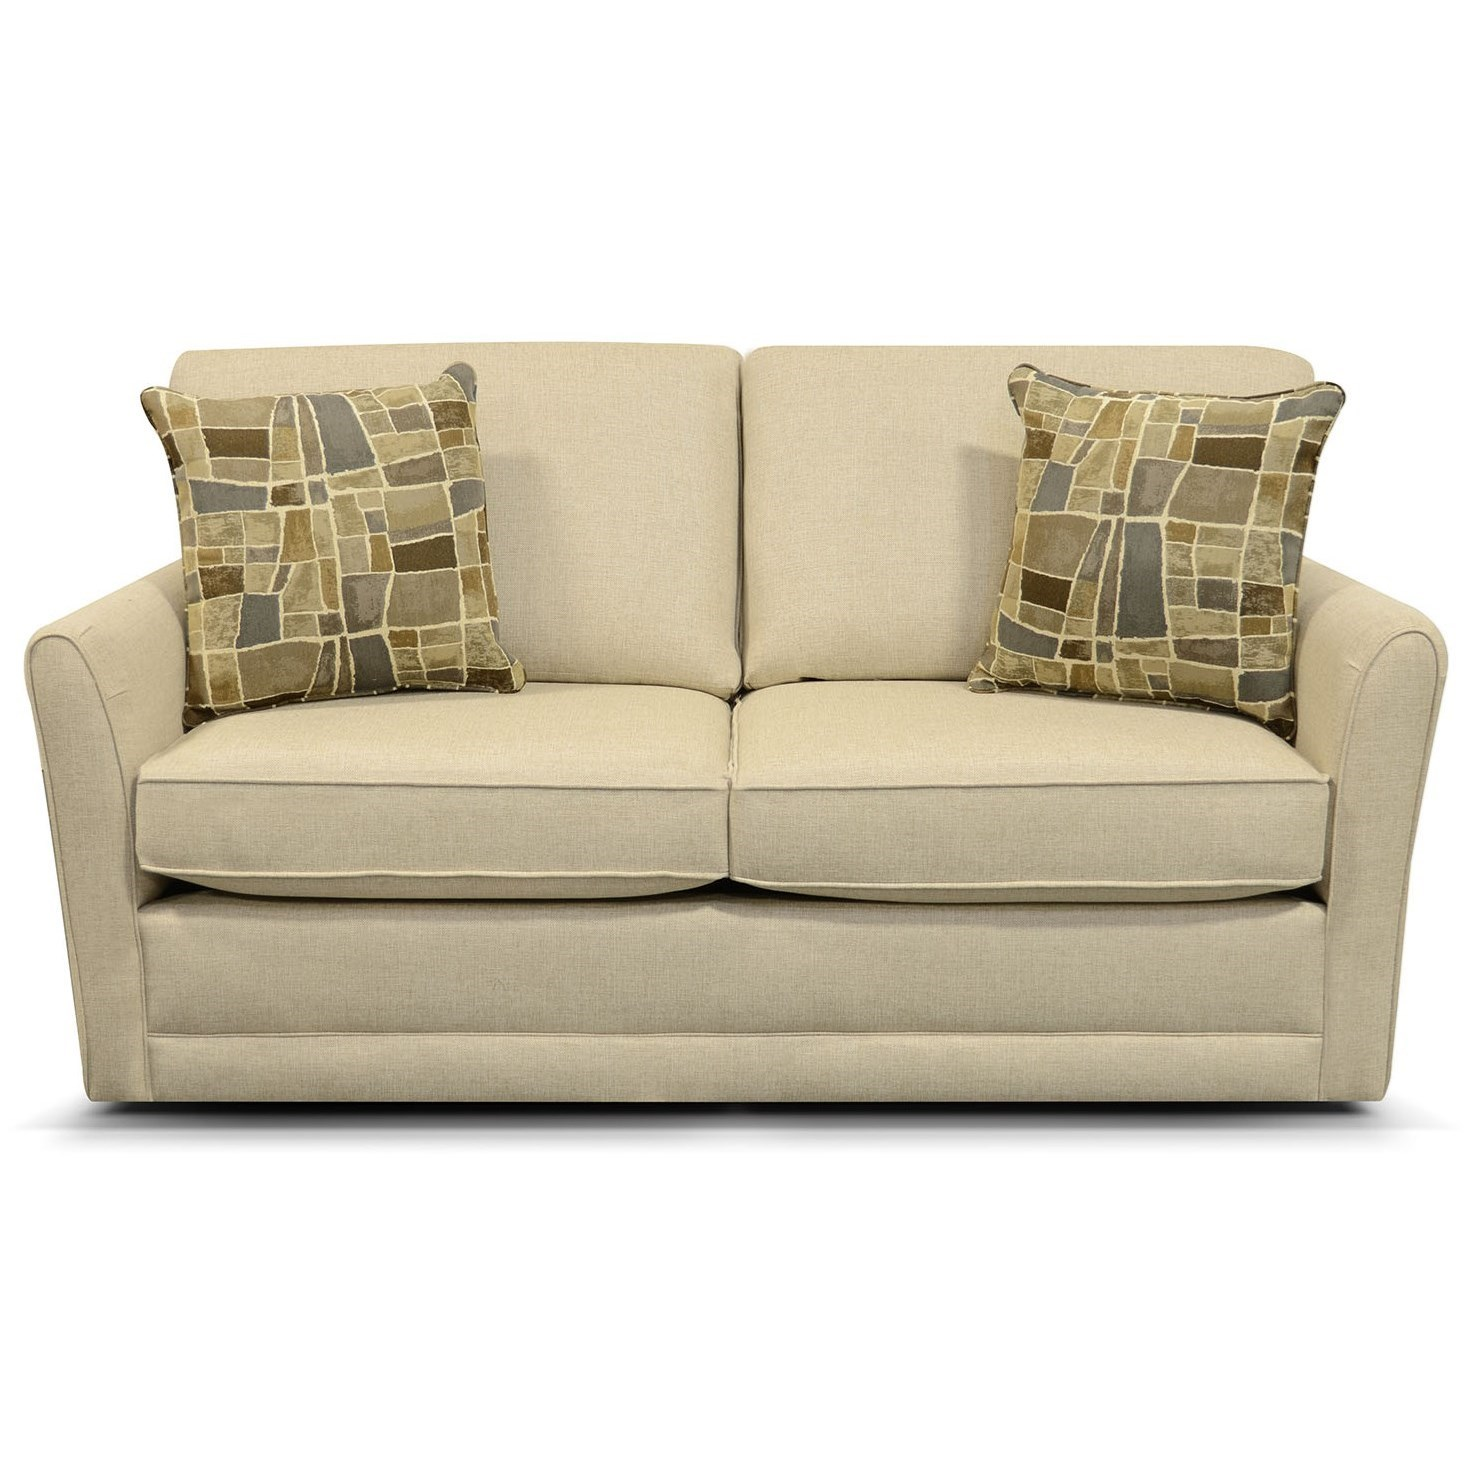 Tripp Loveseat by England at Godby Home Furnishings